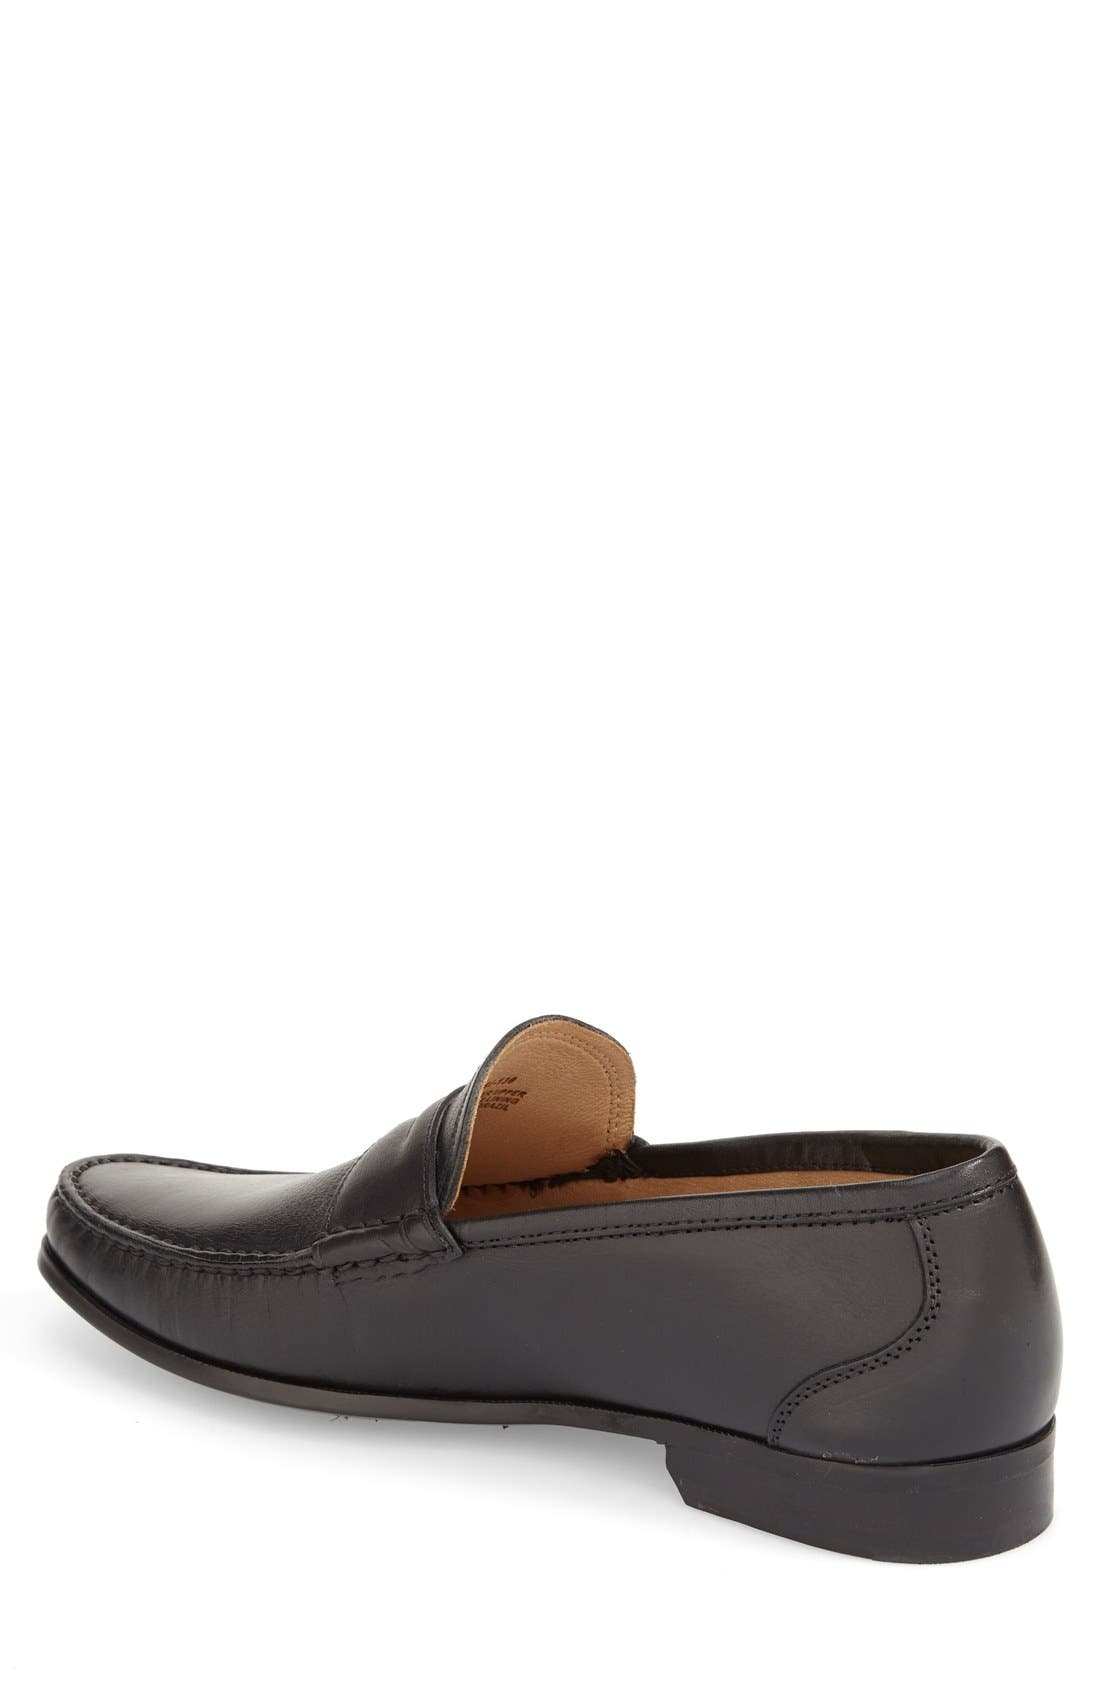 Penny Loafer,                             Alternate thumbnail 2, color,                             001